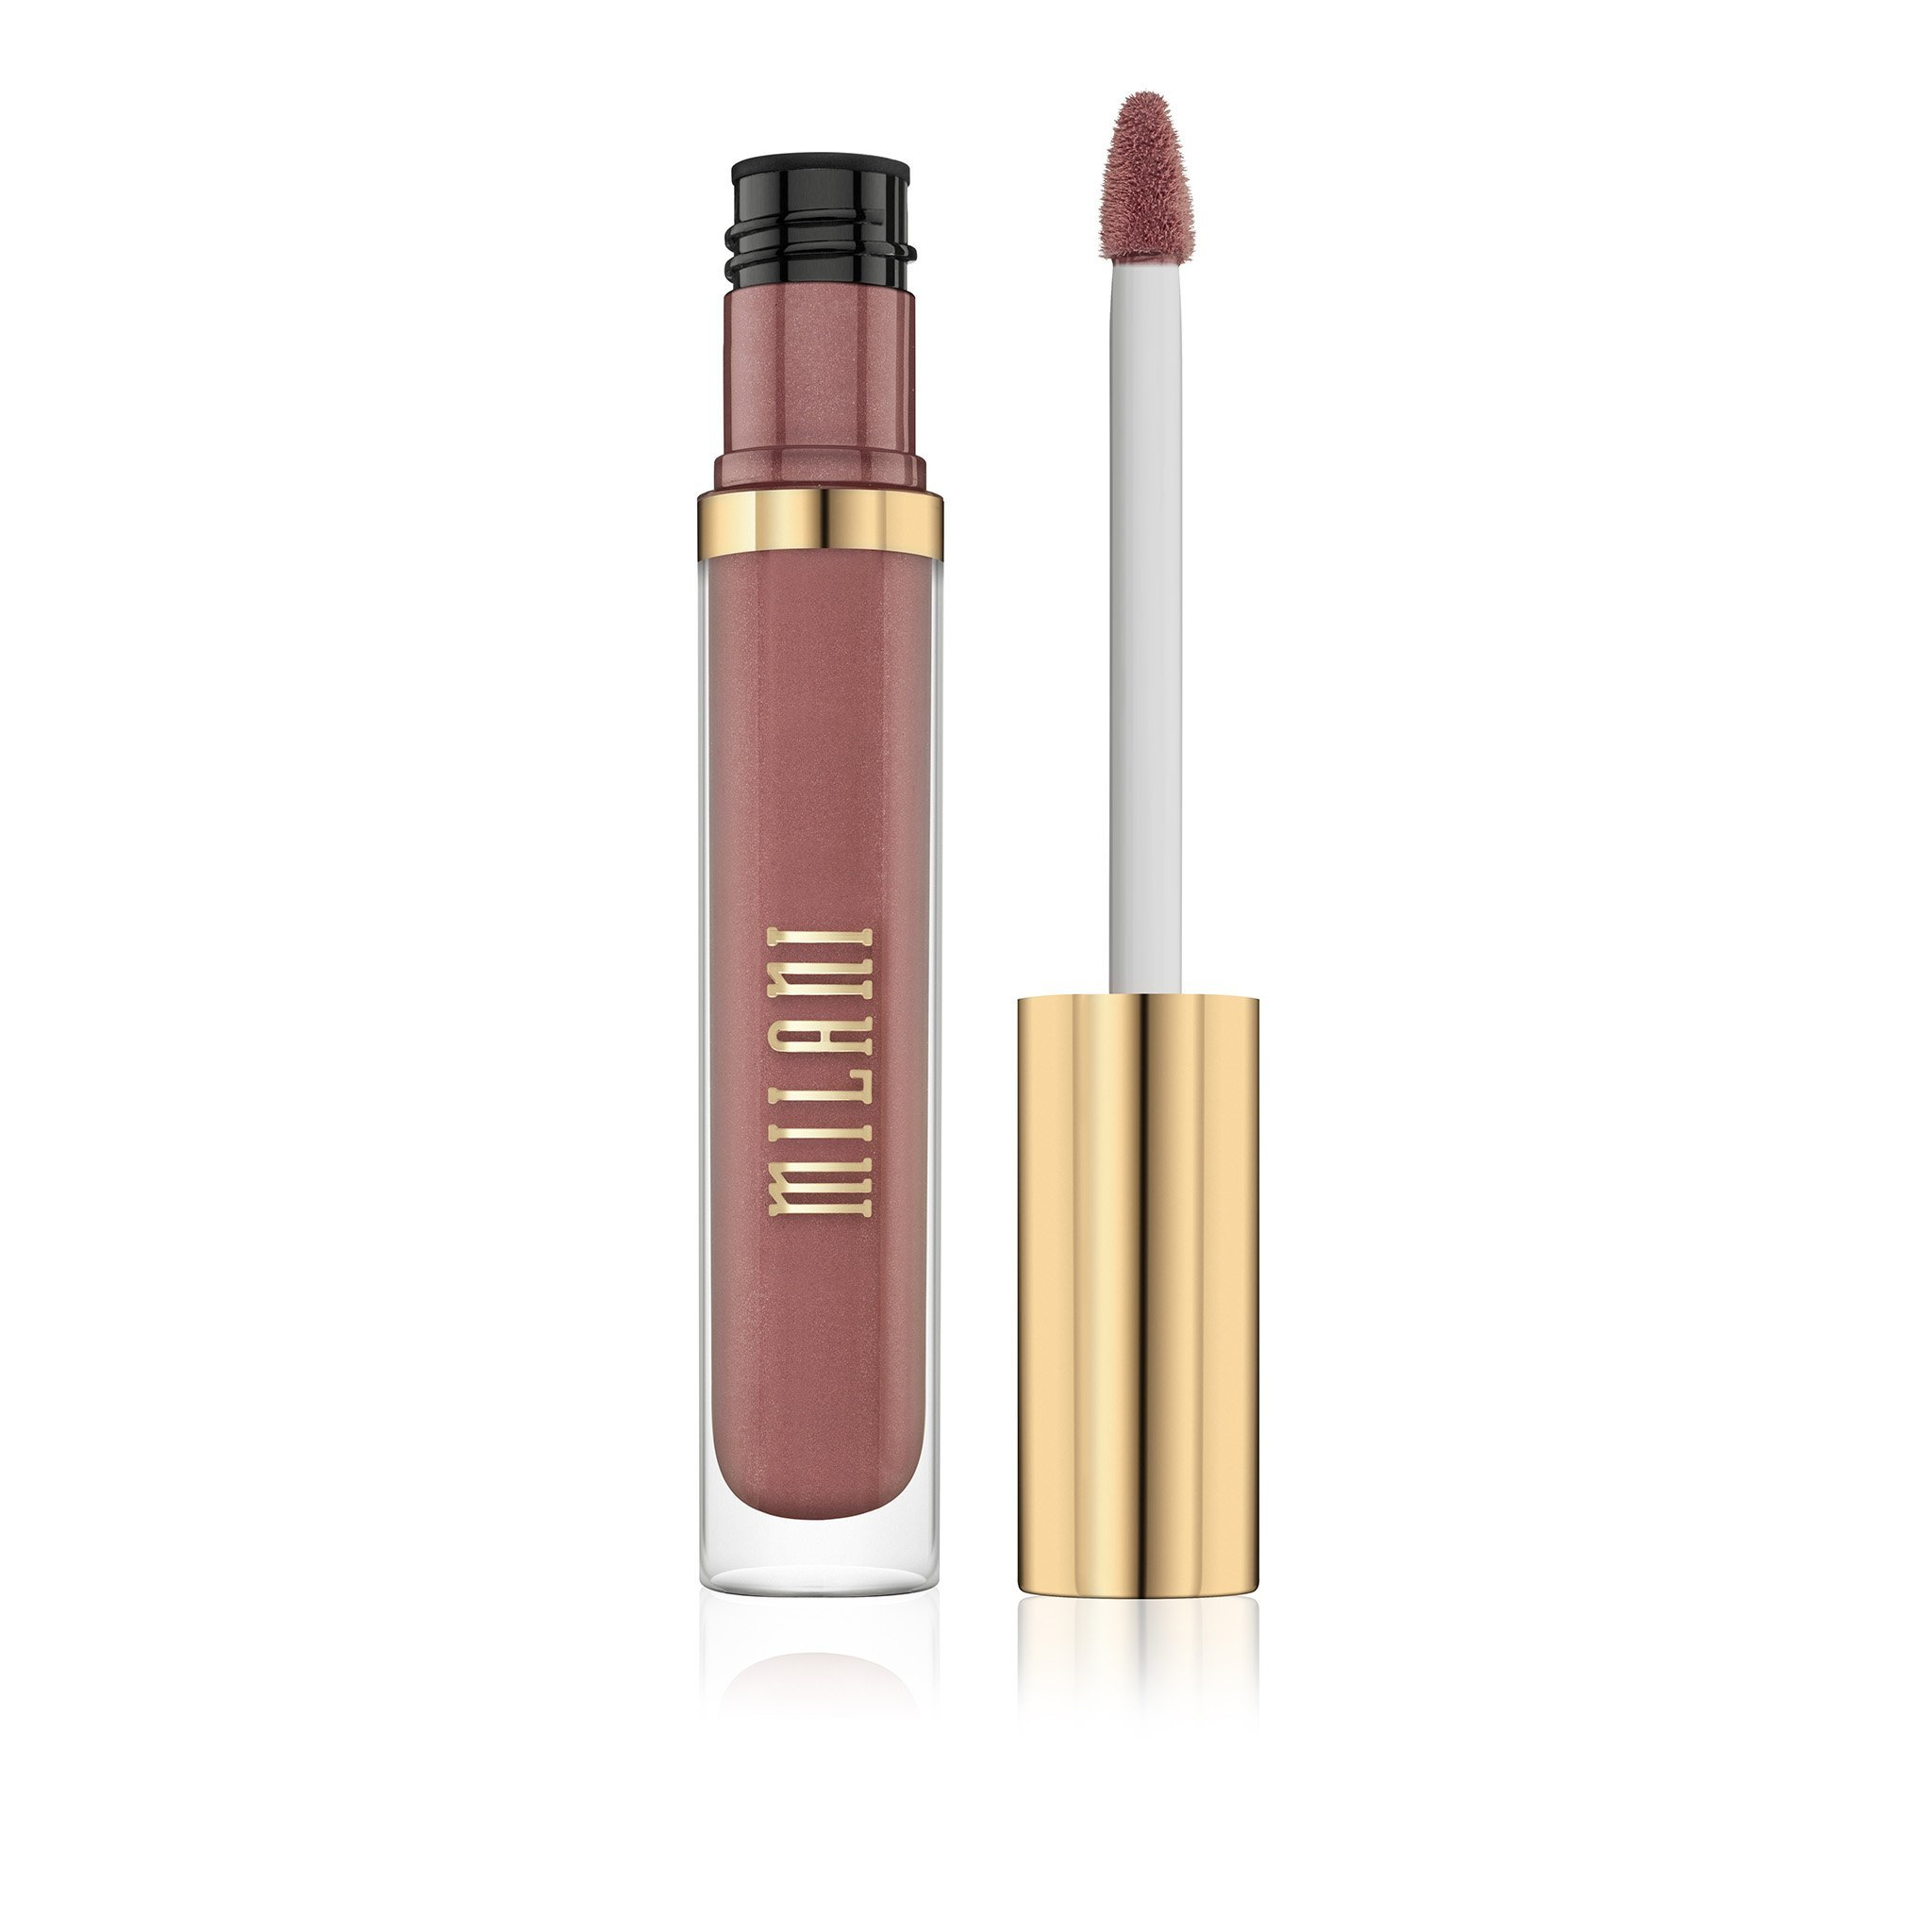 MILANI Блеск для губ Amore Shine Liquid Lip Color